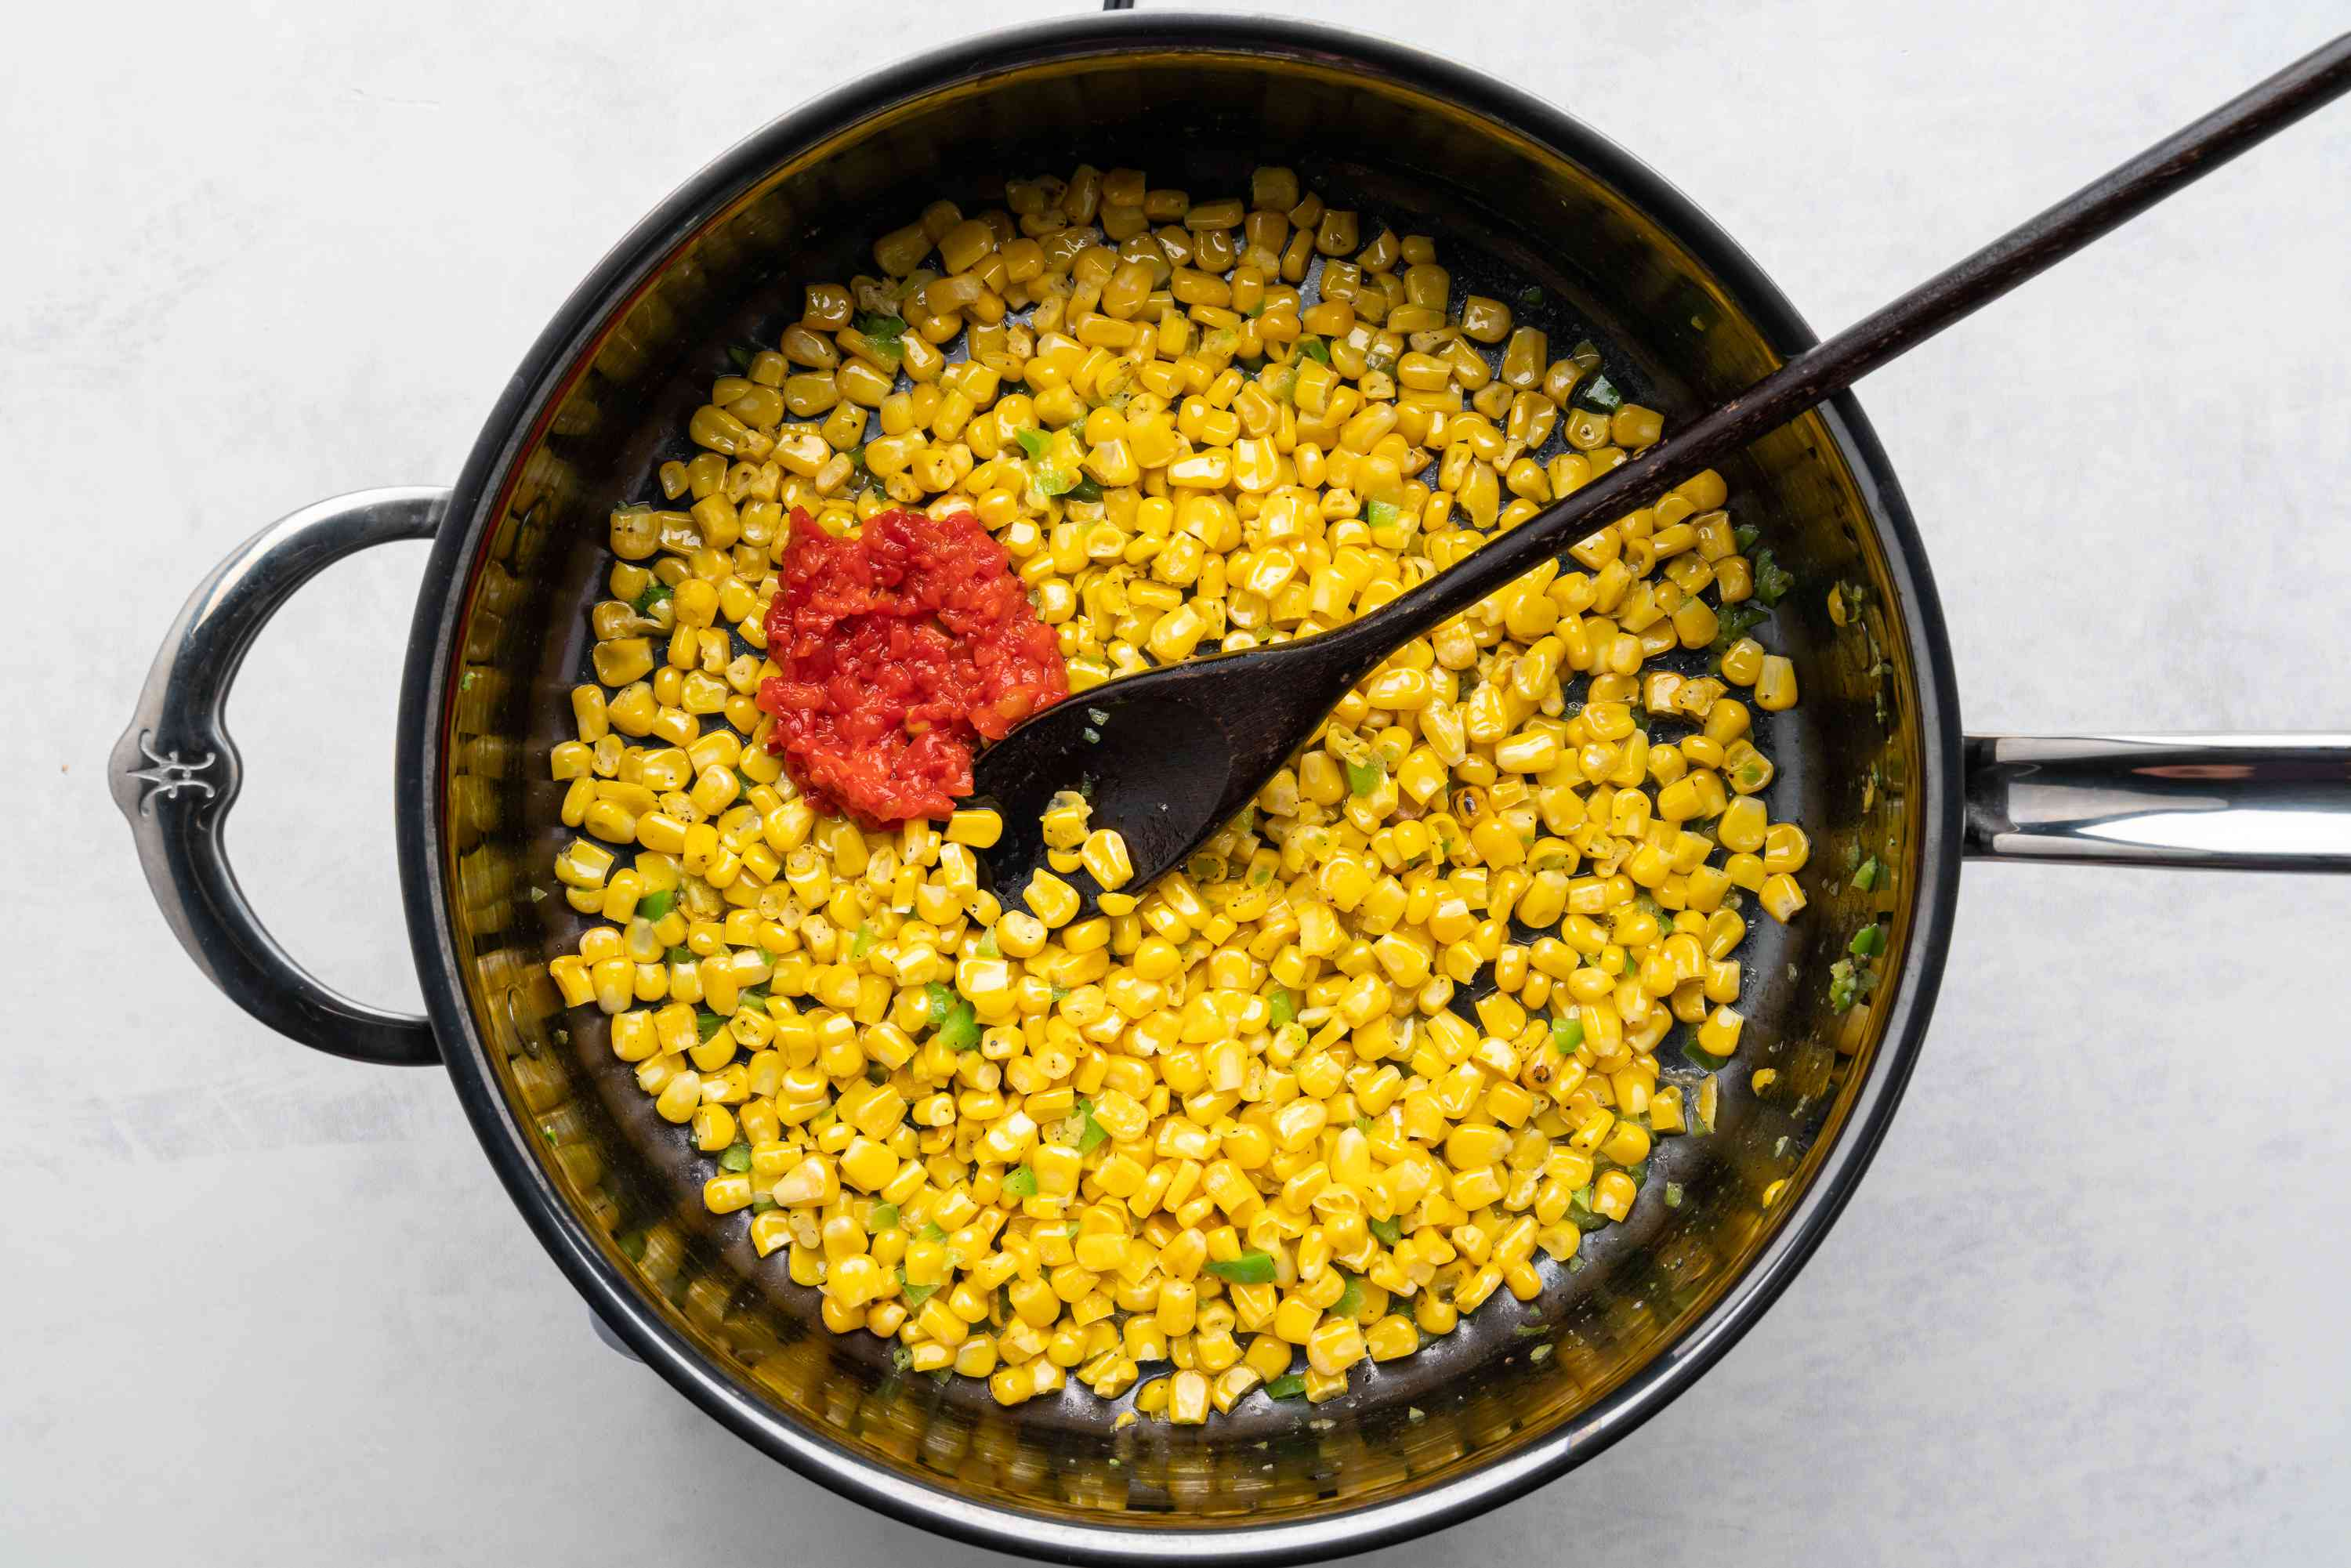 chopped pimiento with the corn mixture in the skillet